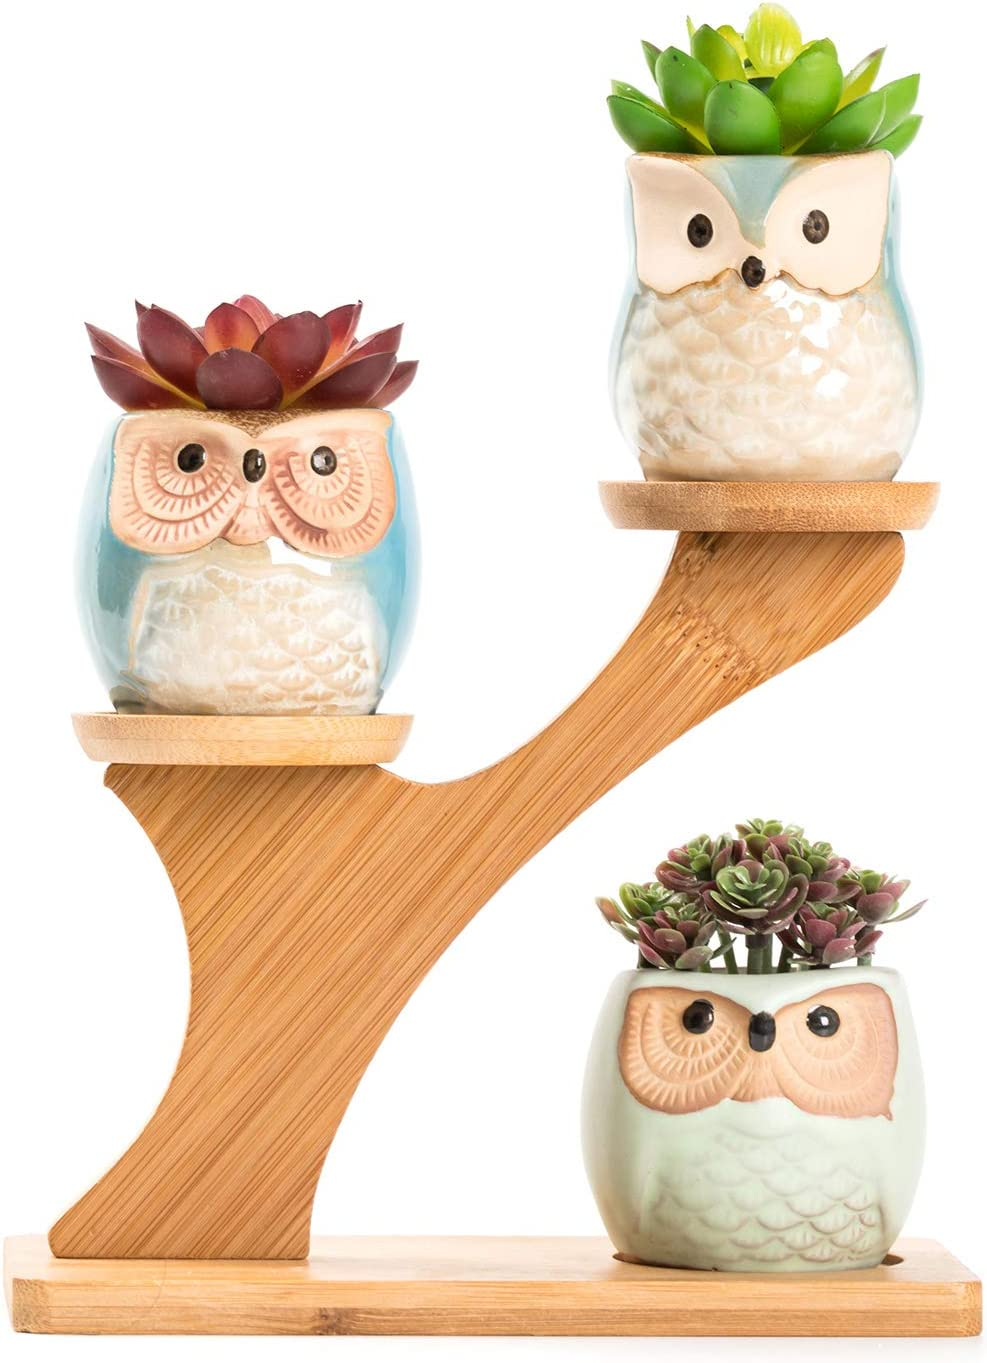 LukieJac Cute Owl Succulent Pots with Bamboo Saucers Stand Holder,Handmade Animal Planter for Cactus&Desk Plants-Owl Decor Gift for Office Desk  Bookshelf  Windowsill  Tabletop-Plants Not Included